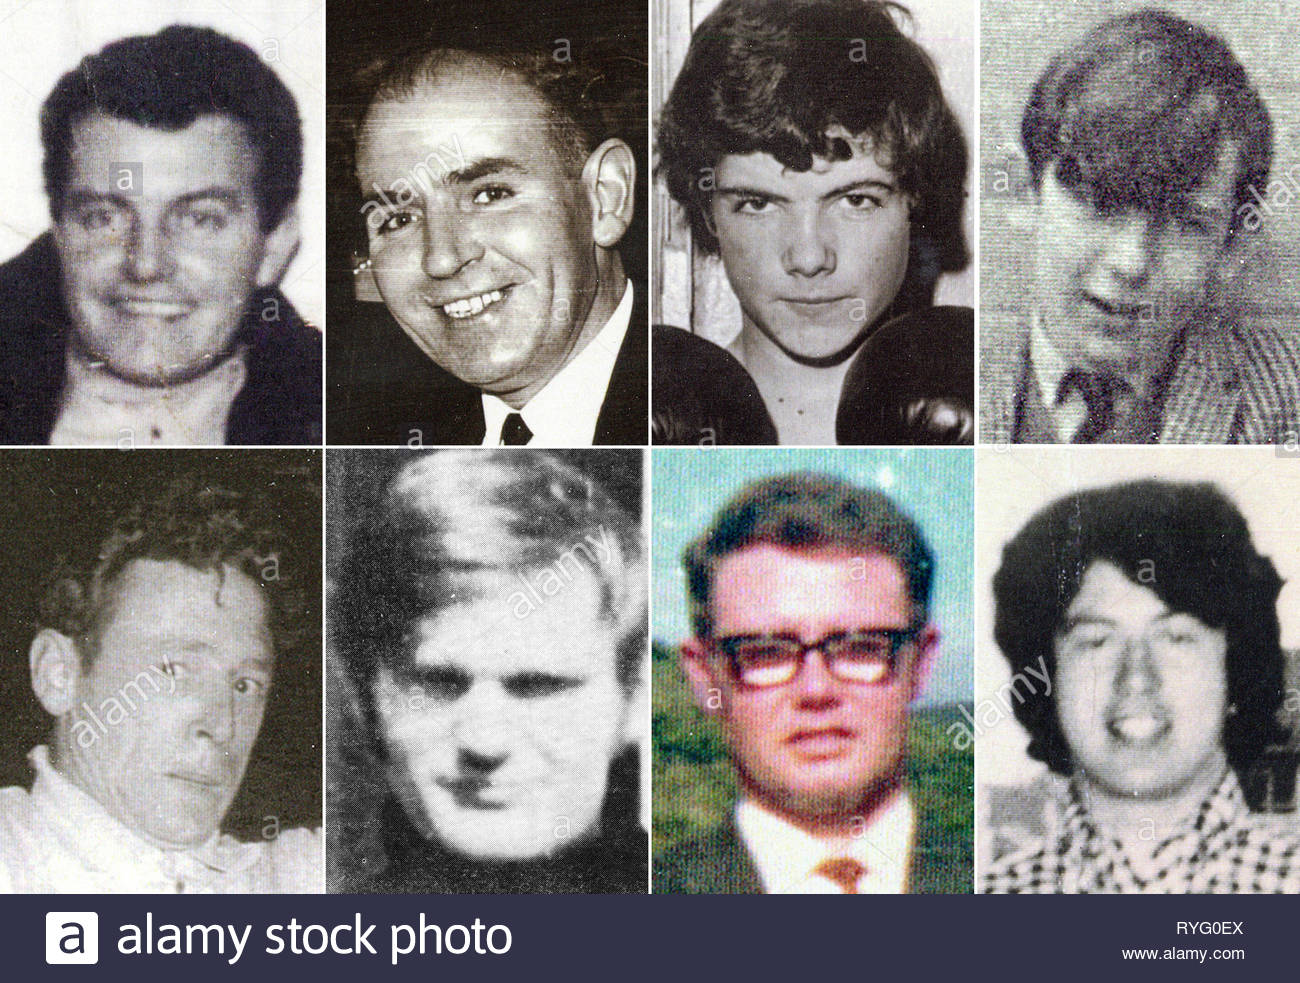 BEST QUALITY AVAILABLE Bloody Sunday Trust undated handout photos of (top row, left to right) Patrick Doherty, Bernard McGuigan, John 'Jackie' Duddy and Gerald Donaghey, (bottom row, left to right) Gerard McKinney, Jim Wray, William McKinney and John Young who were killed on Bloody Sunday. Northern Ireland's Director of Public Prosecutions has announced that a solider will face prosecution for the murders of James Wray and William McKinney and the attempted murders of Joseph Friel, Michael Quinn, Joe Mahon and Patrick O'Donnell. - Stock Image